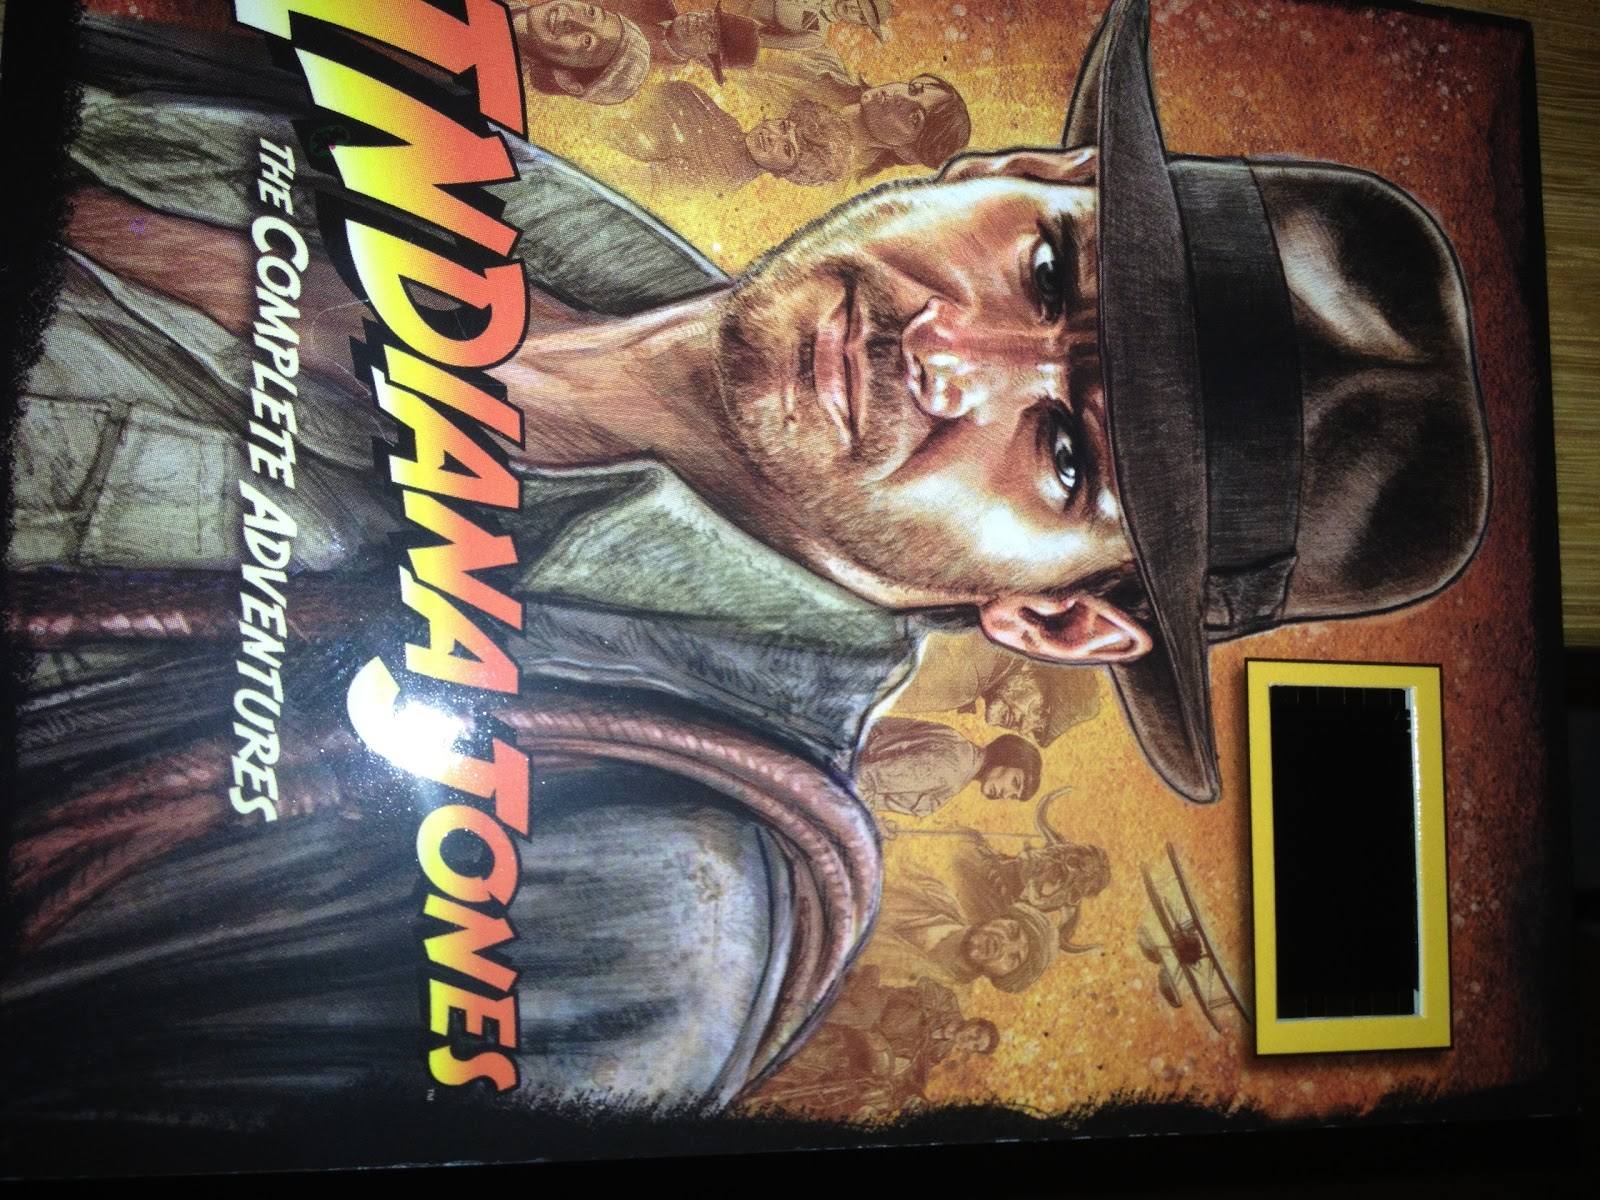 Indiana Jones film cell